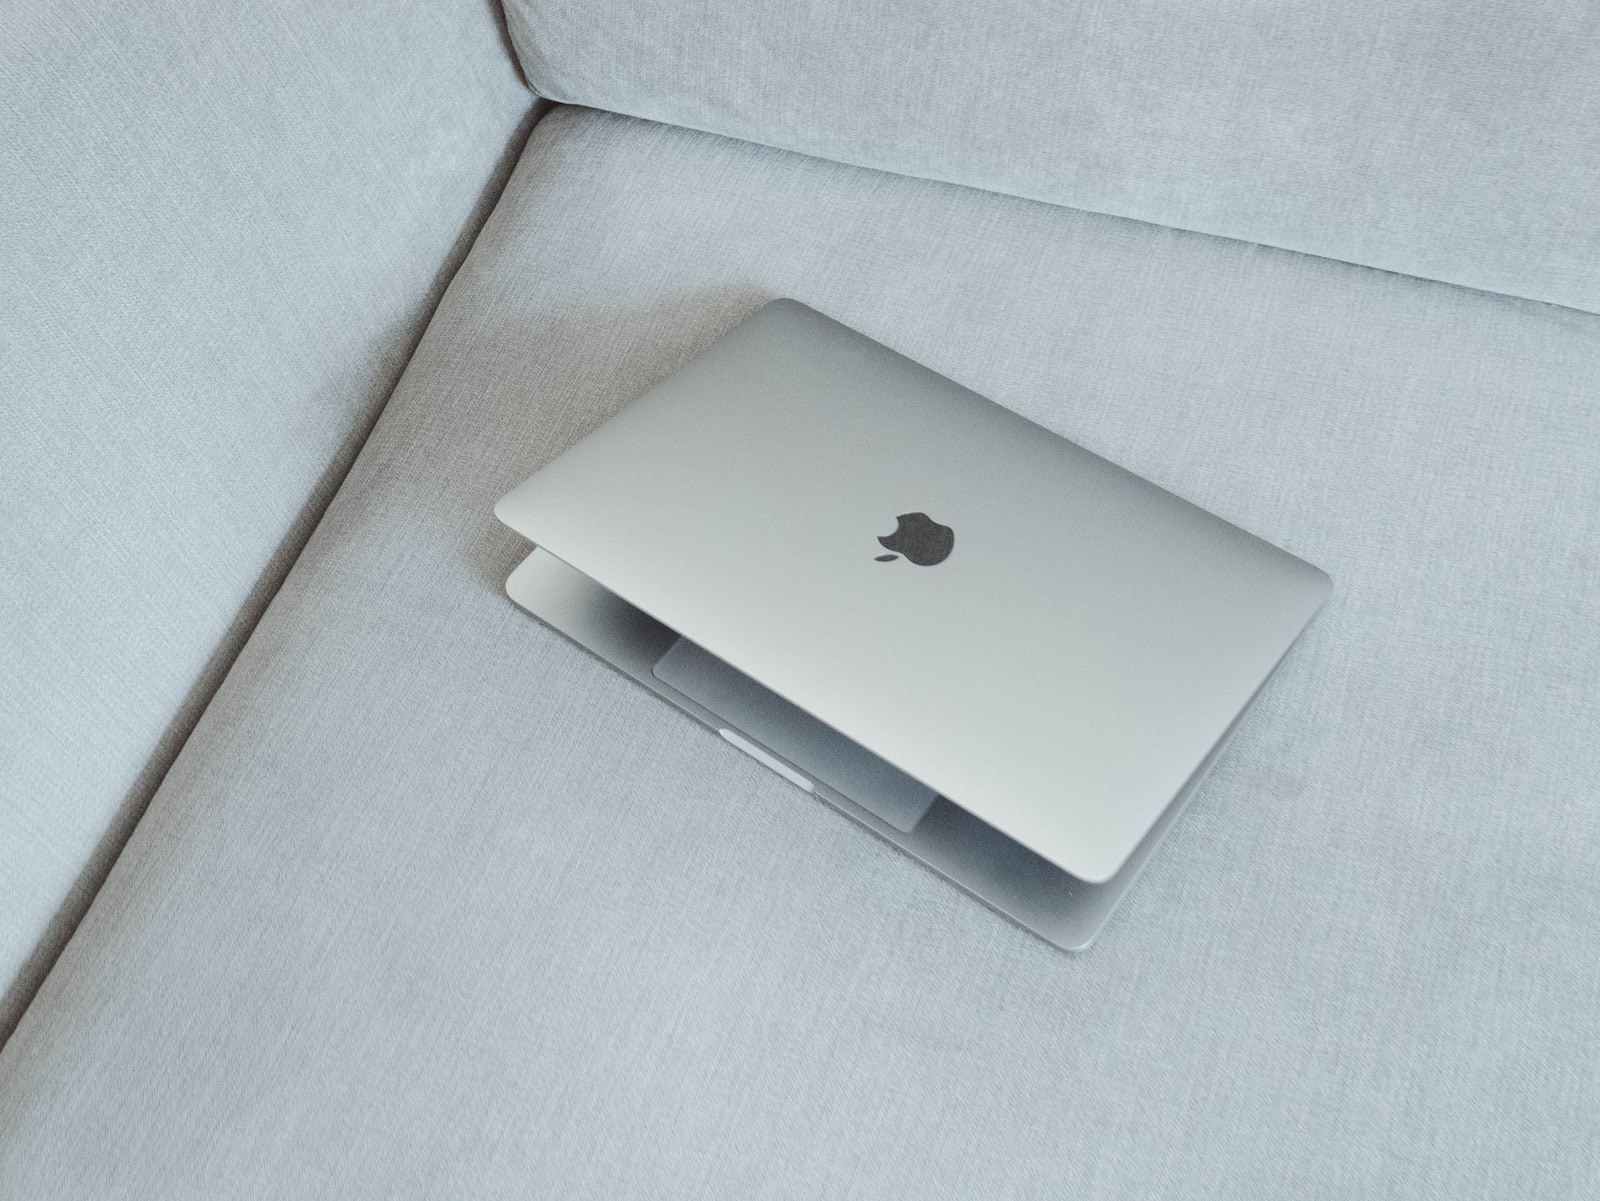 MacBook Pro Space Gray Model